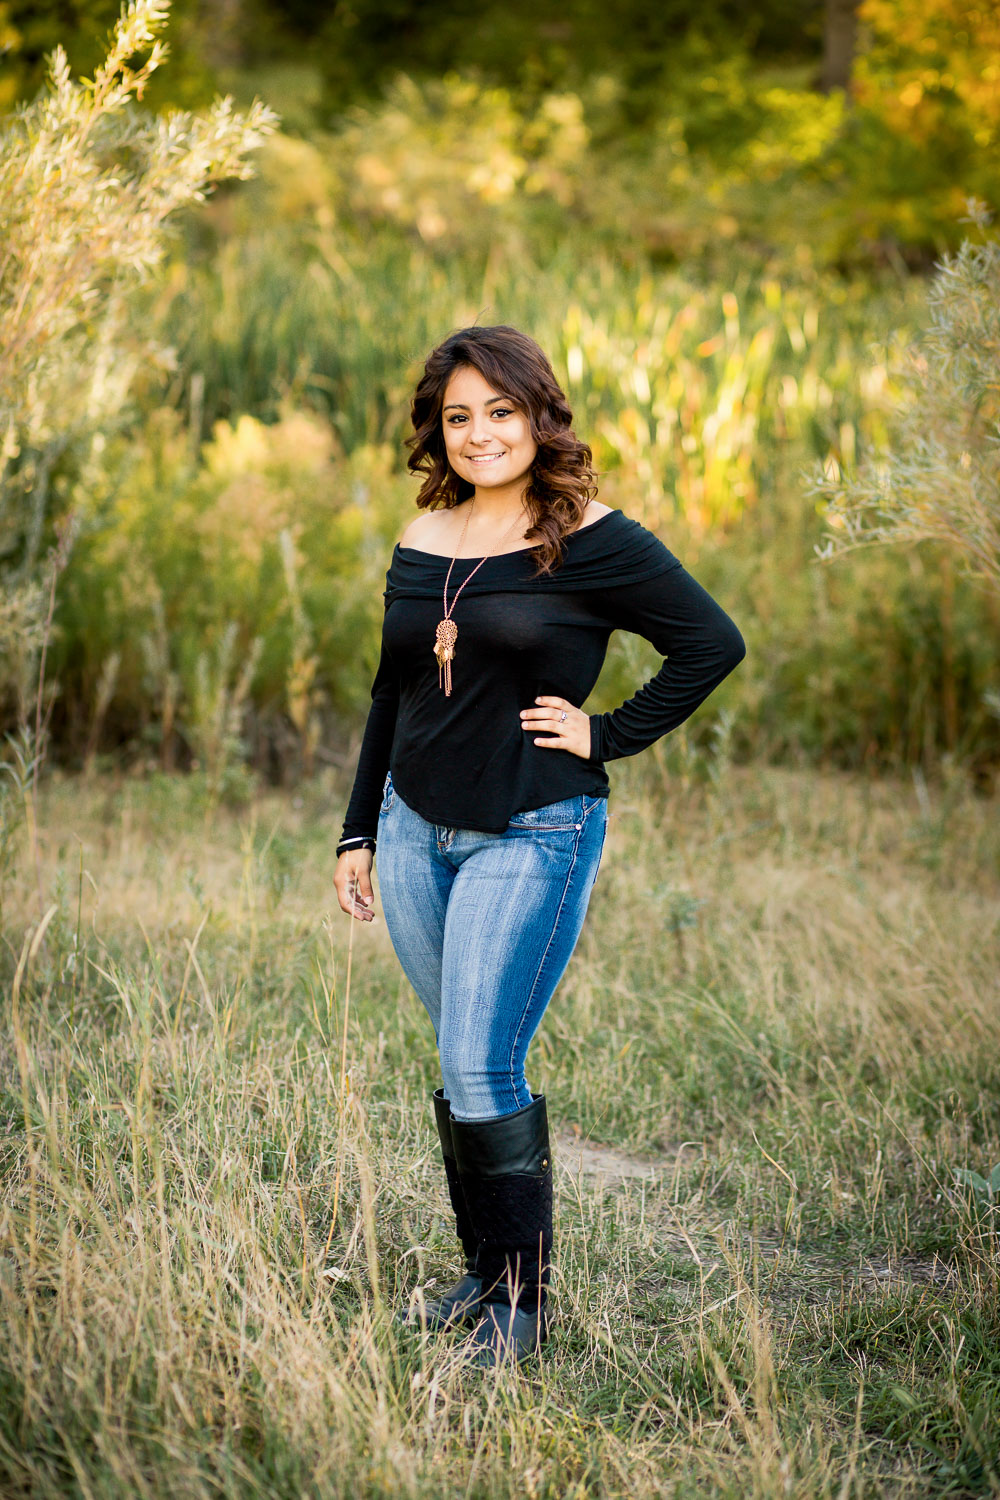 denver_senior_portrait_photographer_kathleen_bracken_photography-34.jpg